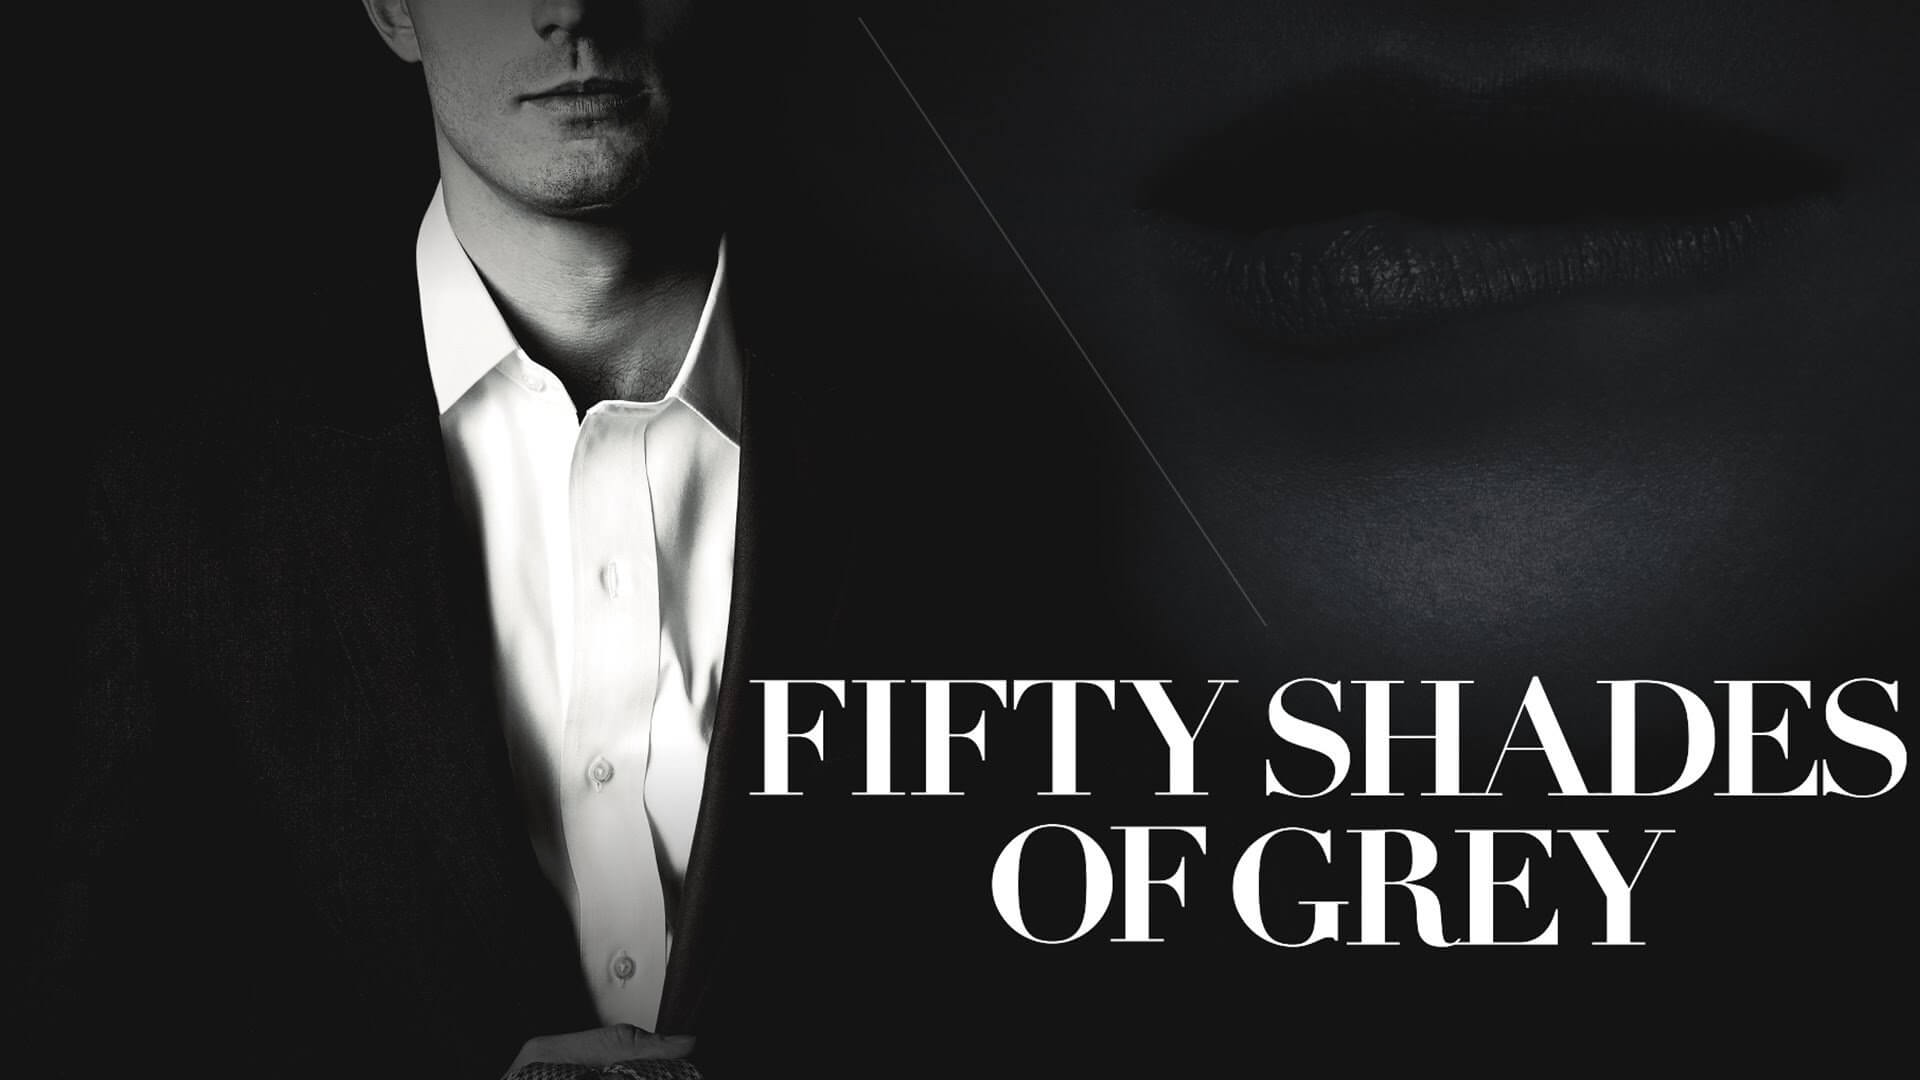 Fifty Shades Of Greay Poster Jorg Huttner